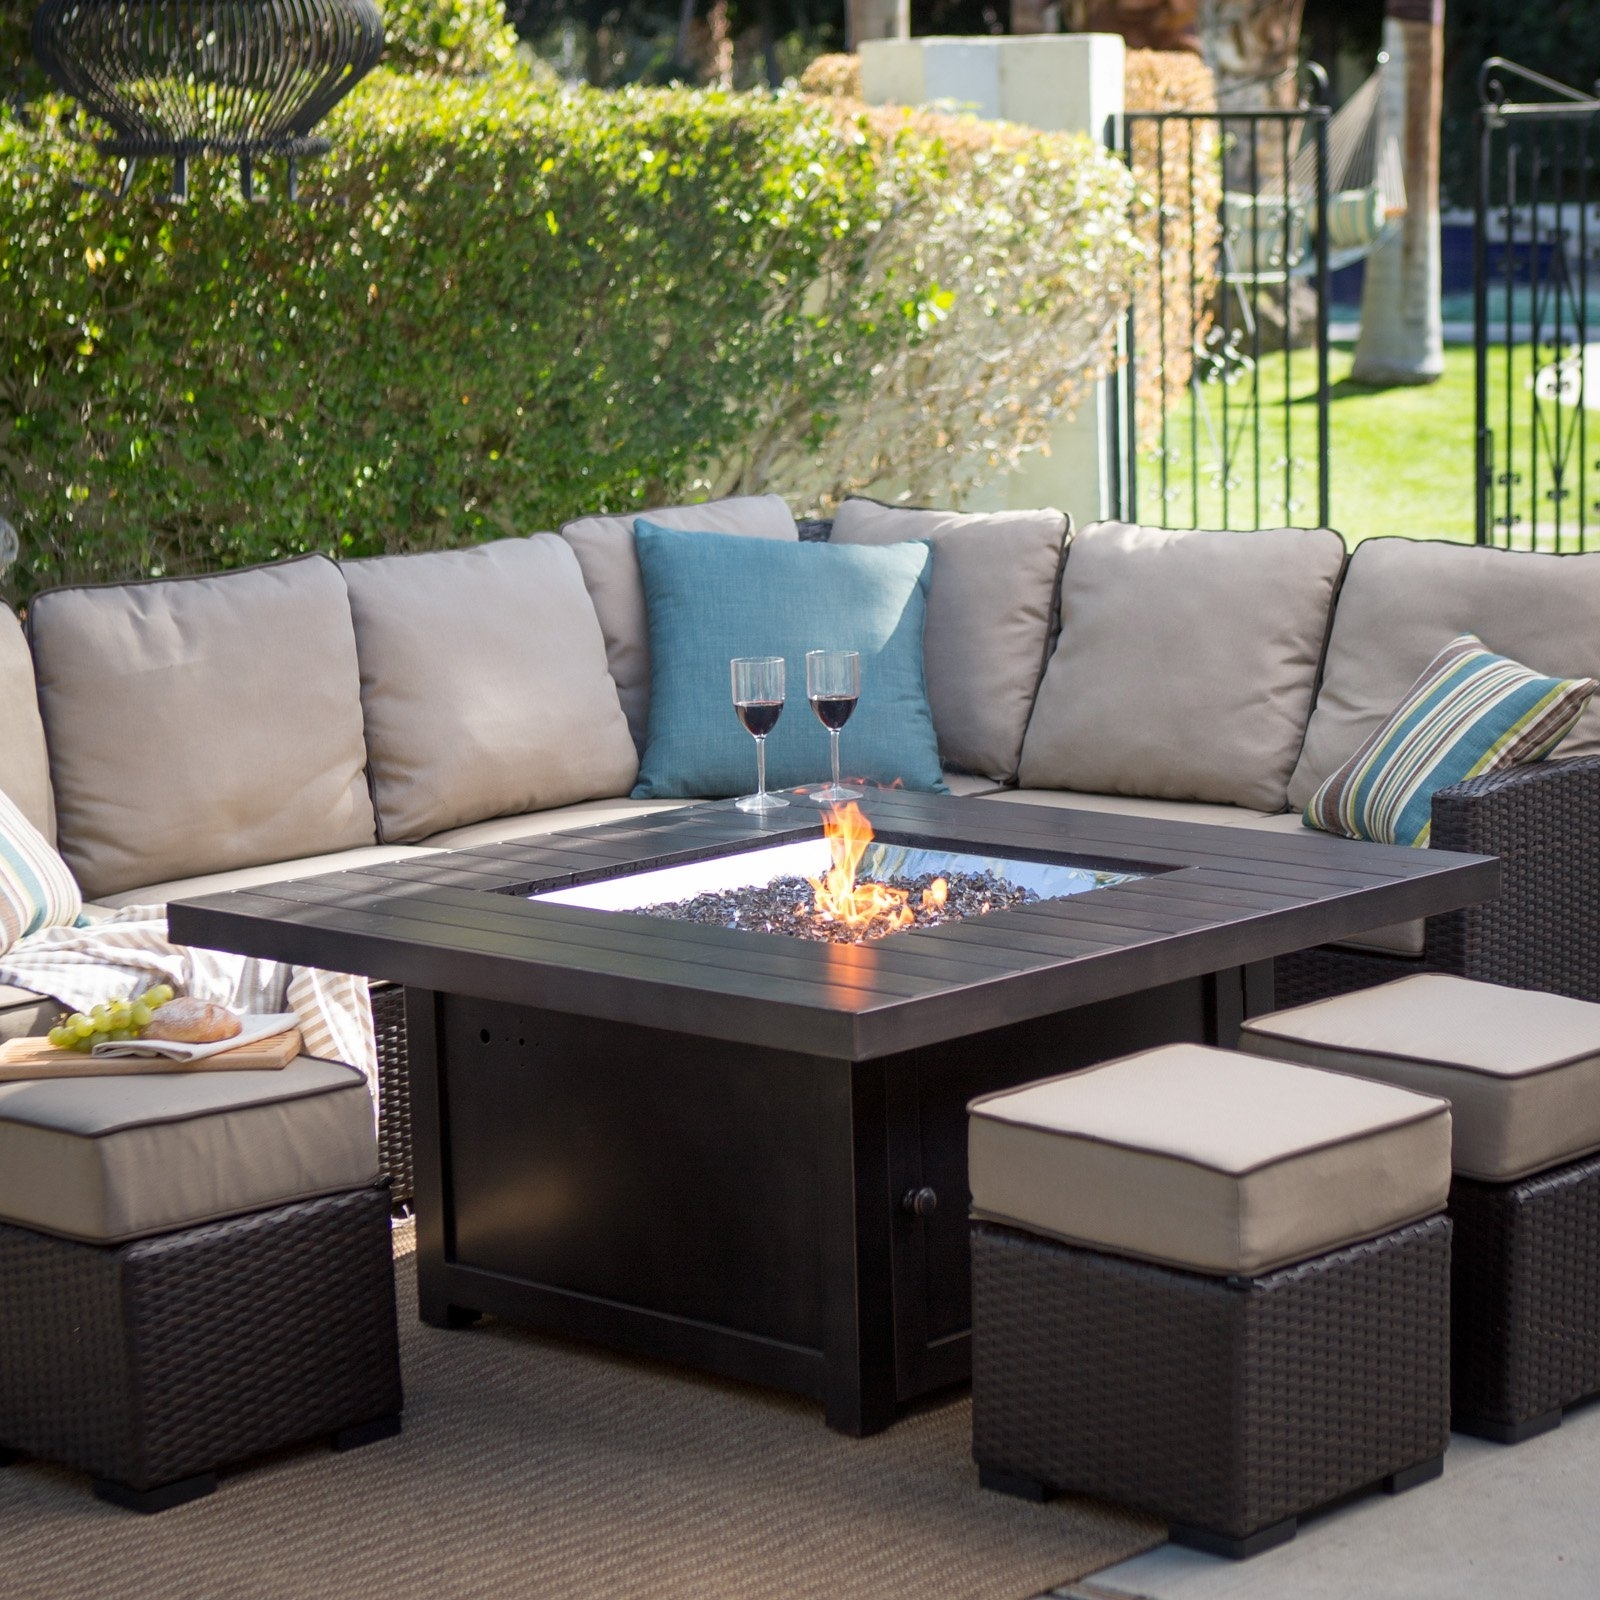 Fashionable Furniture: High Quality Patio Furniture Columbus Ohio And Fire Pit For Conversation Patio Sets With Outdoor Sectionals (View 6 of 15)